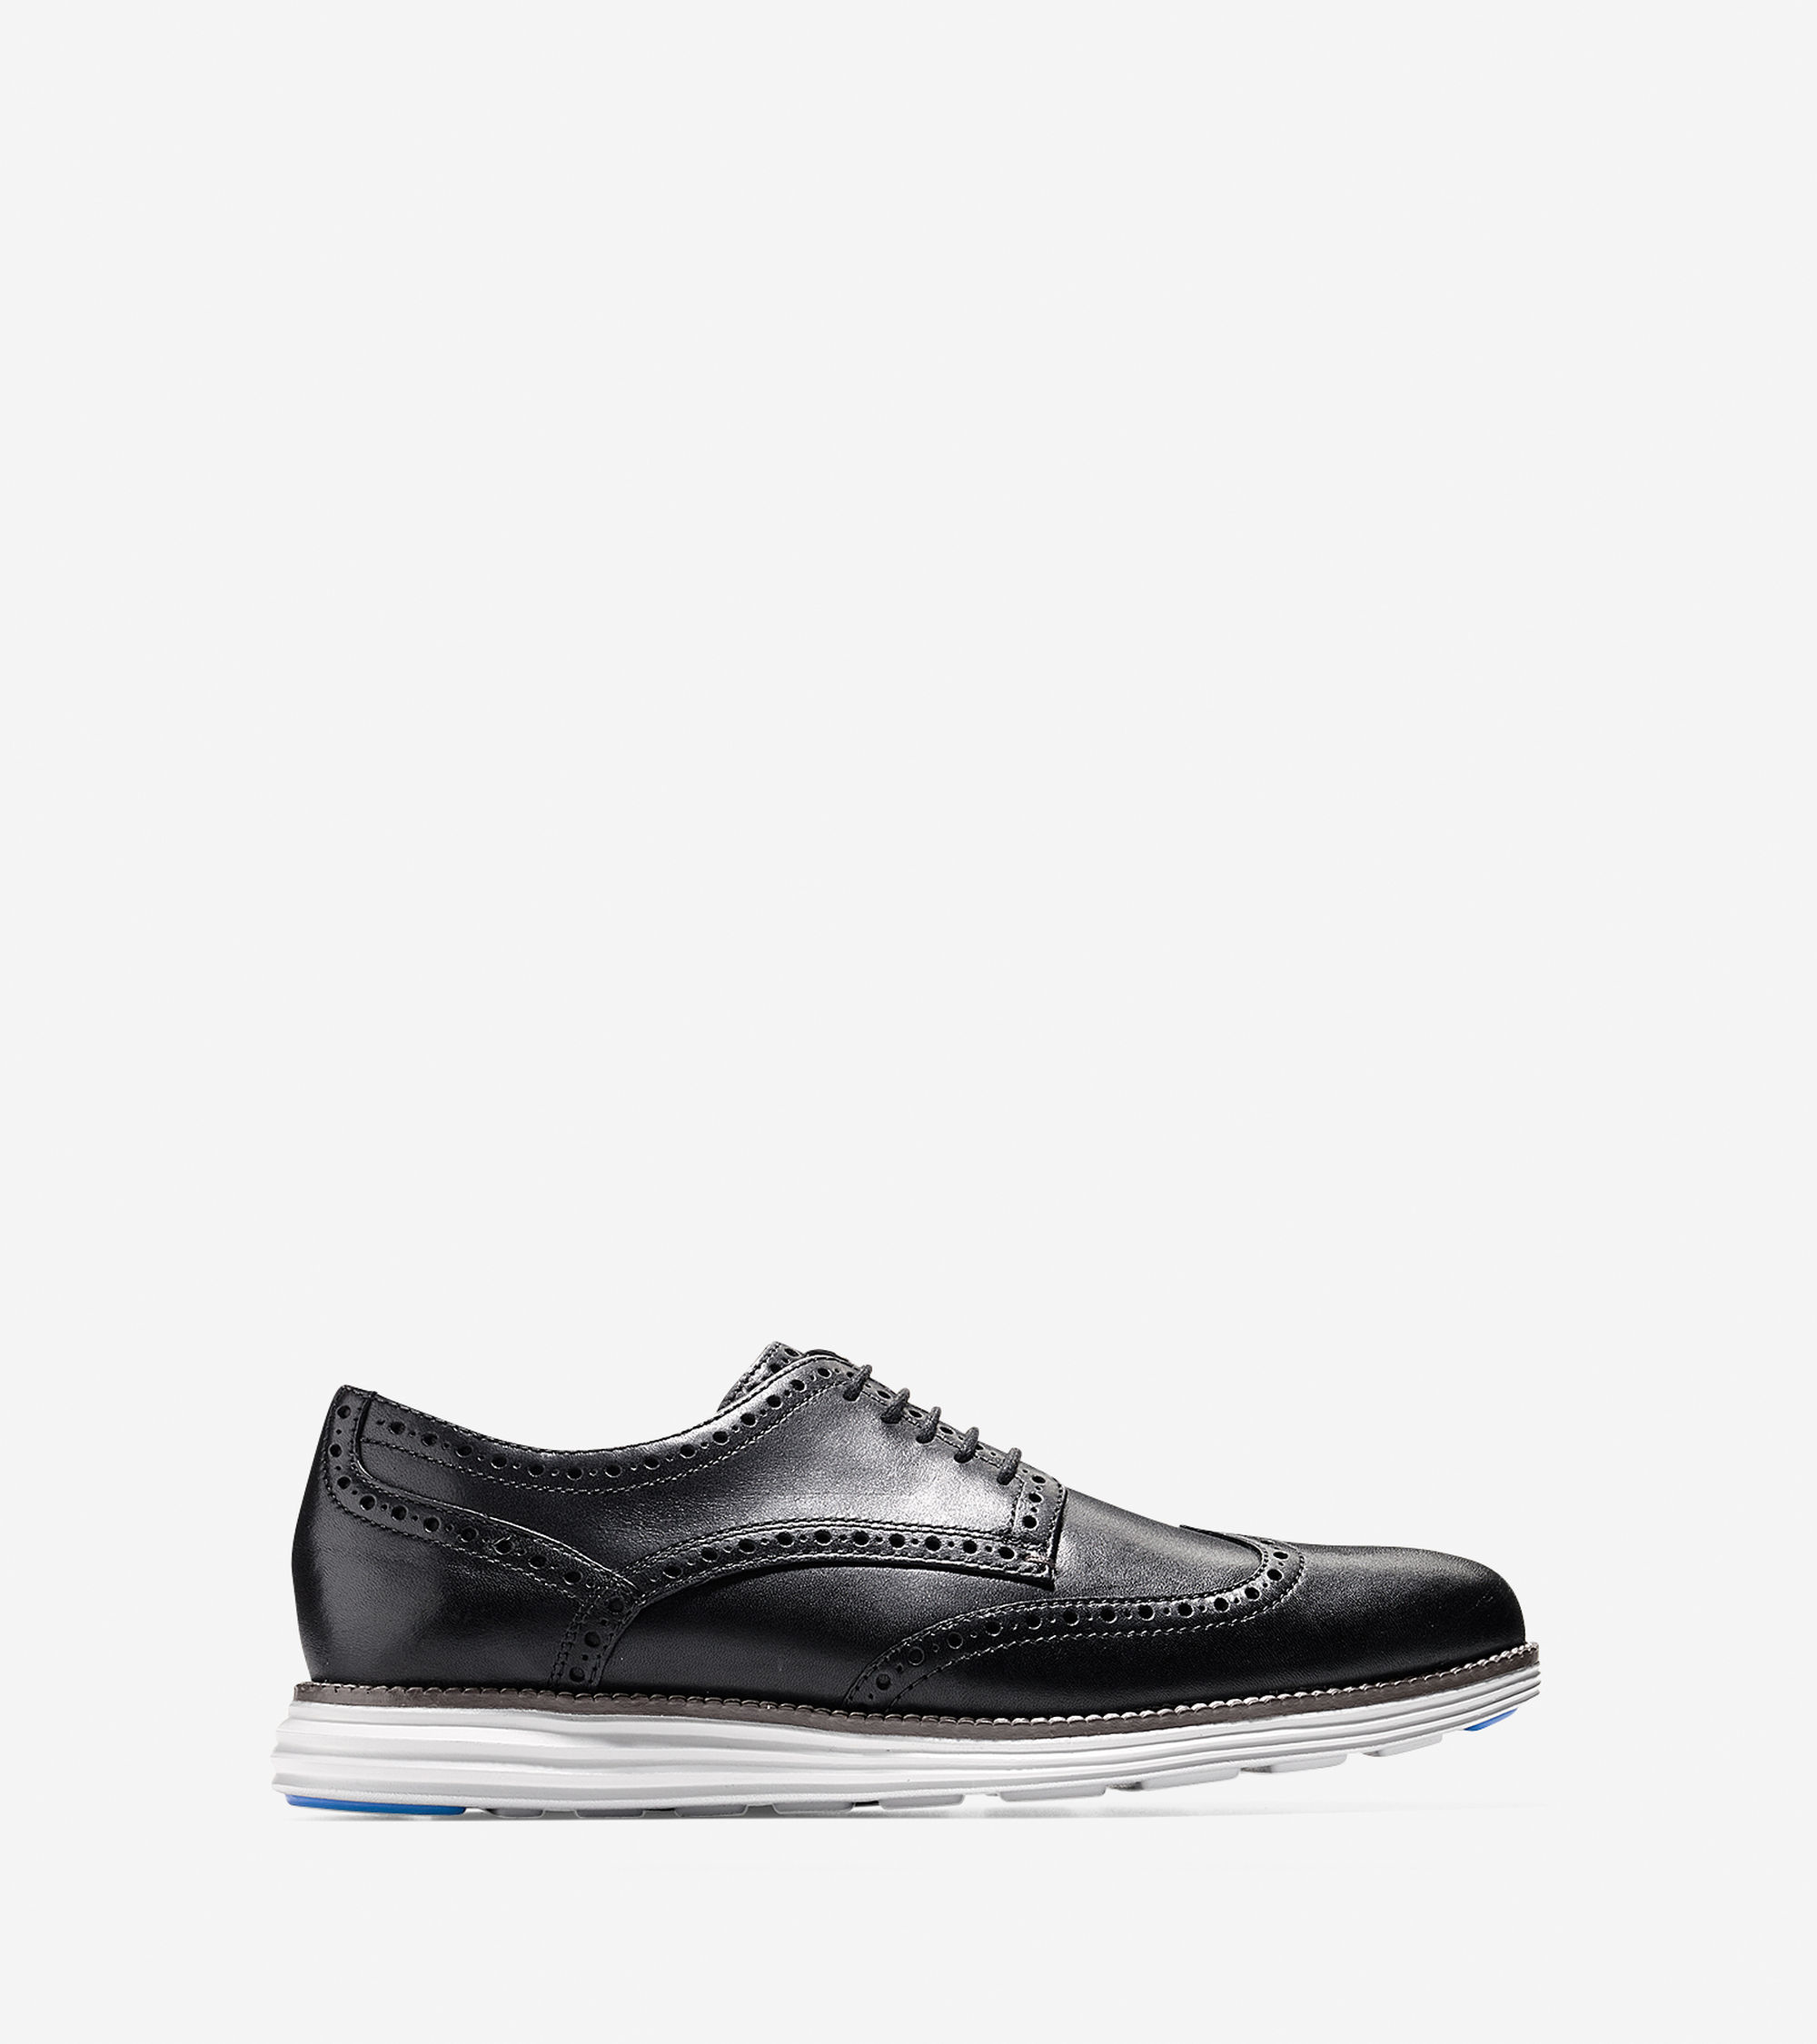 Cole Haan Womens Shoes Oxgord